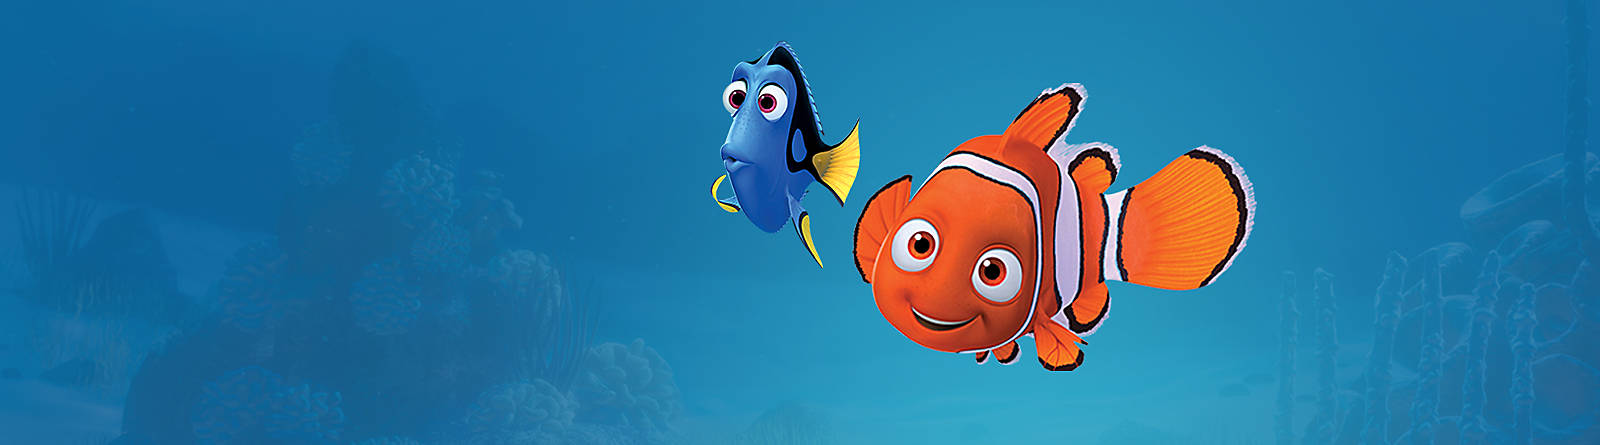 Finding Nemo Discover our Finding Nemo range including soft toys, playsets, collectibles and more